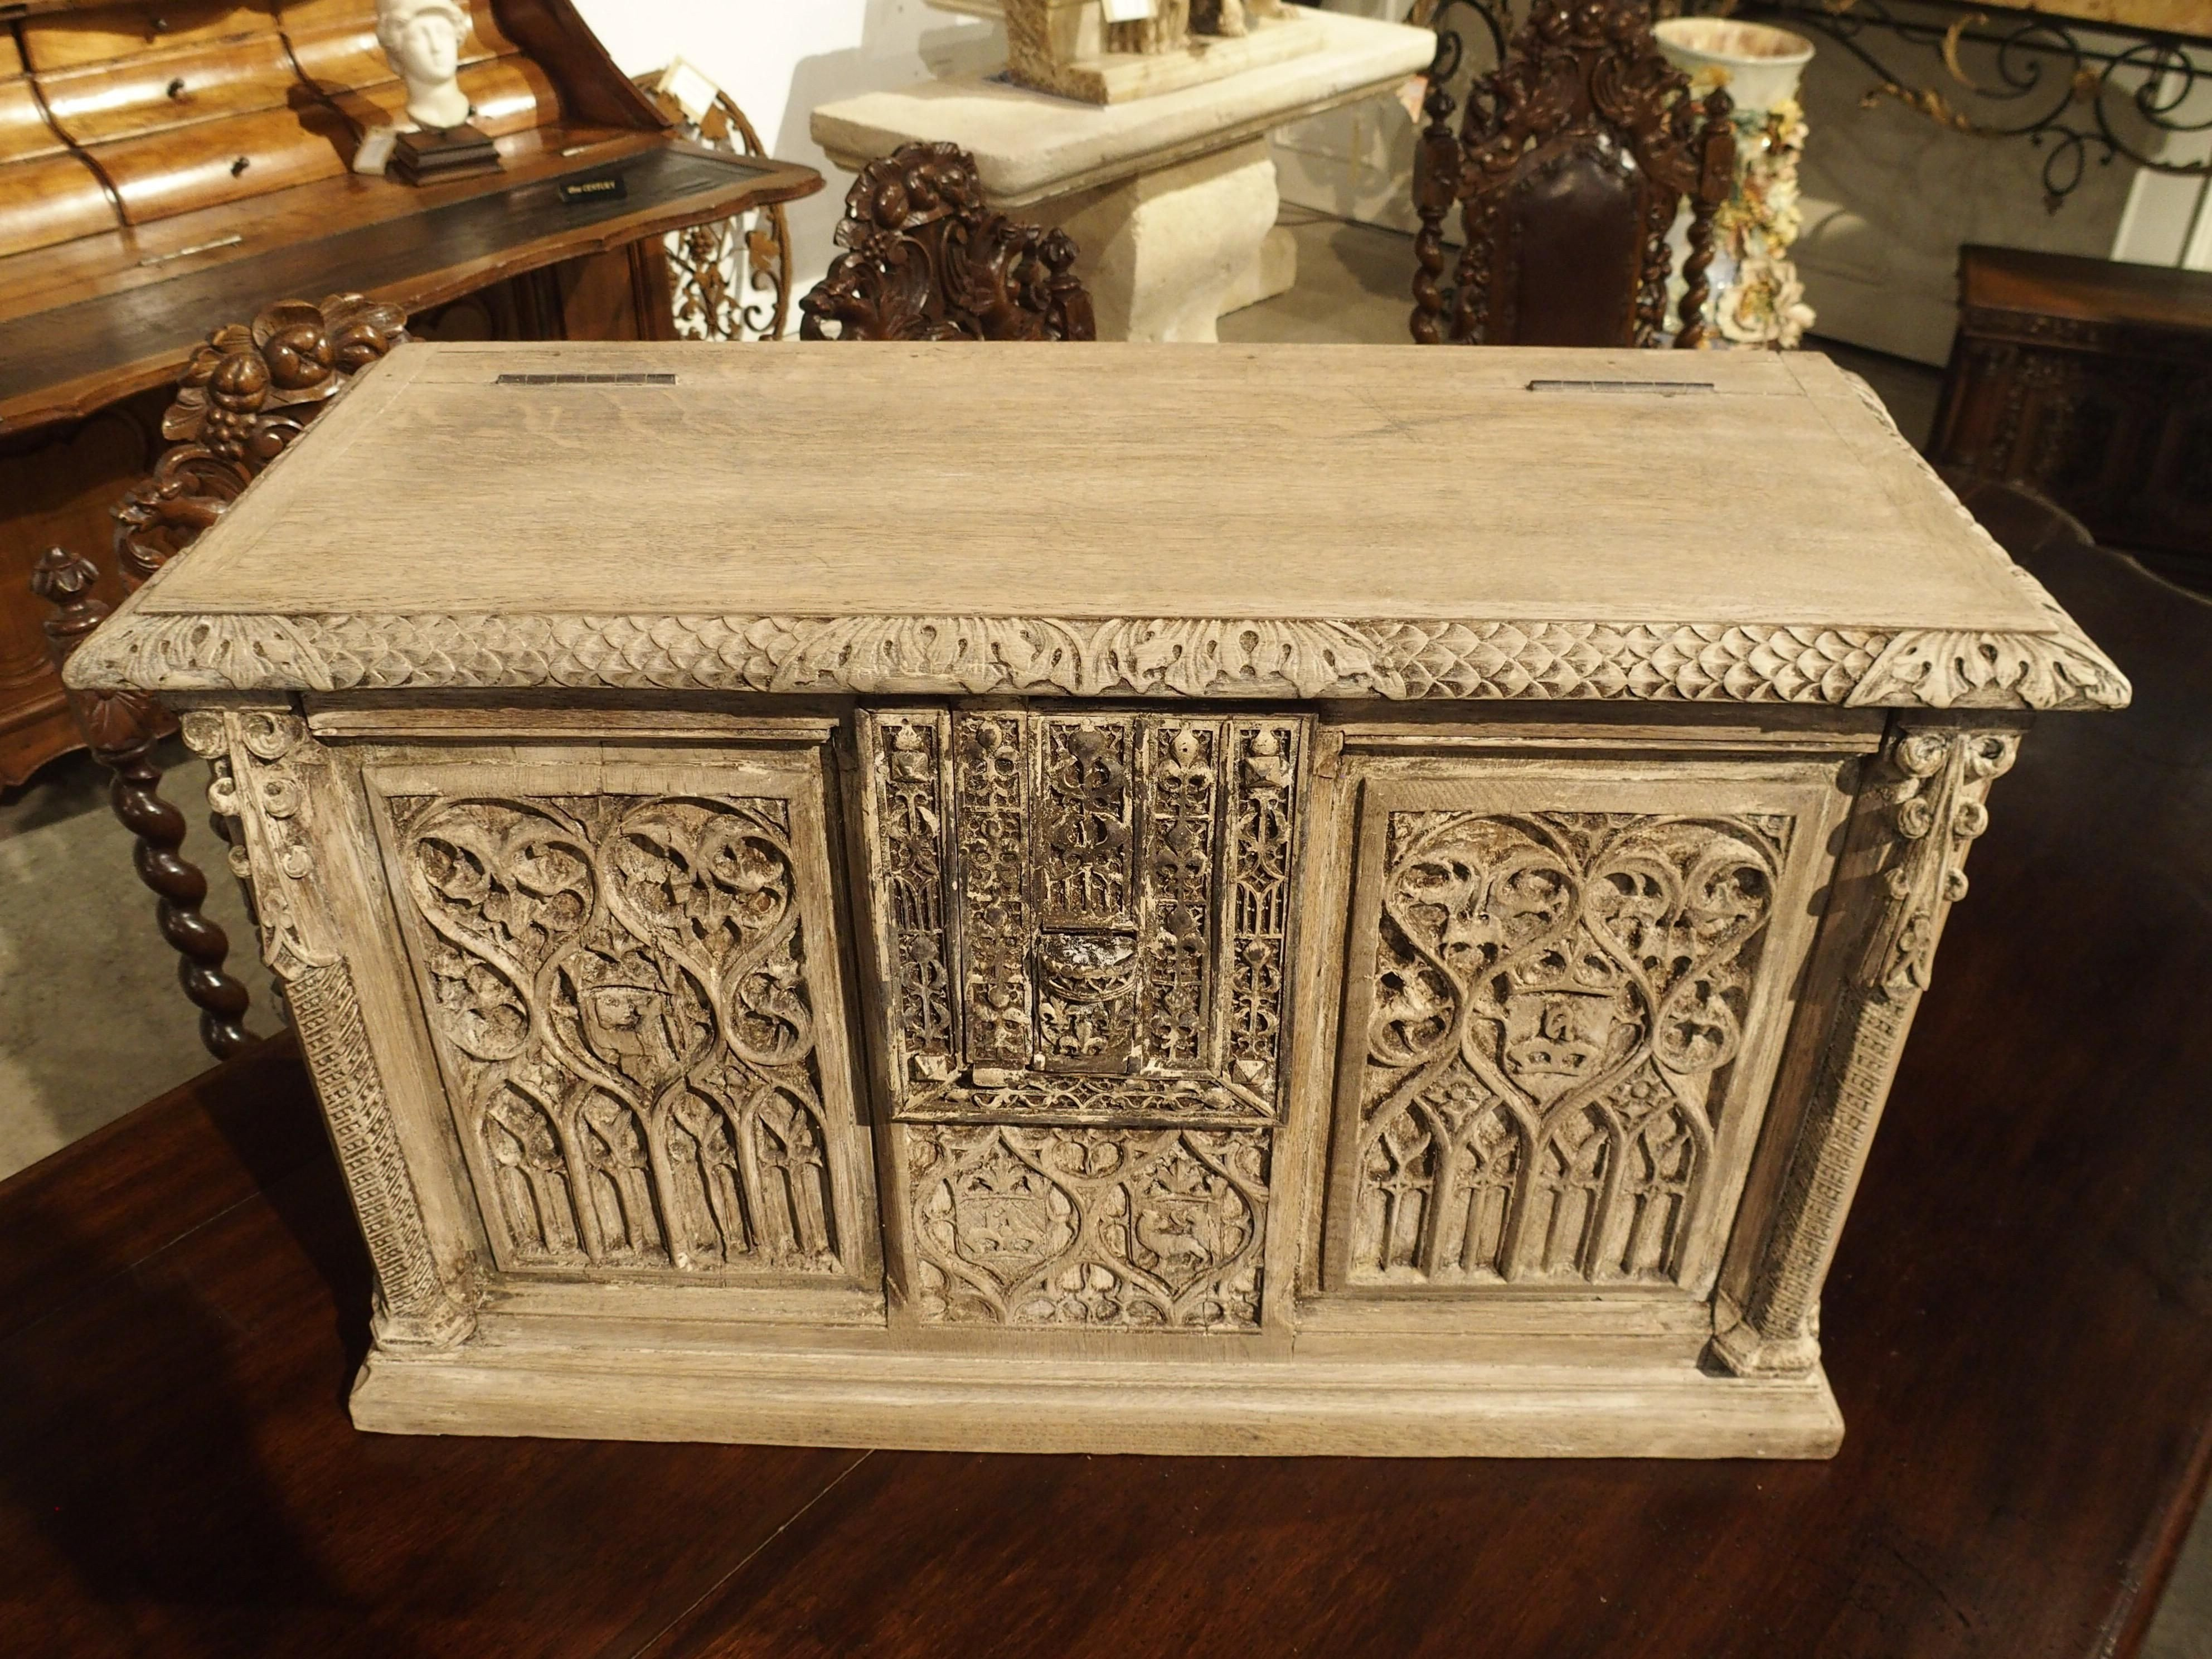 Gothic Bedroom Furniture for Sale Elegant Small Stripped Oak Gothic Trunk From France Circa 1890 for